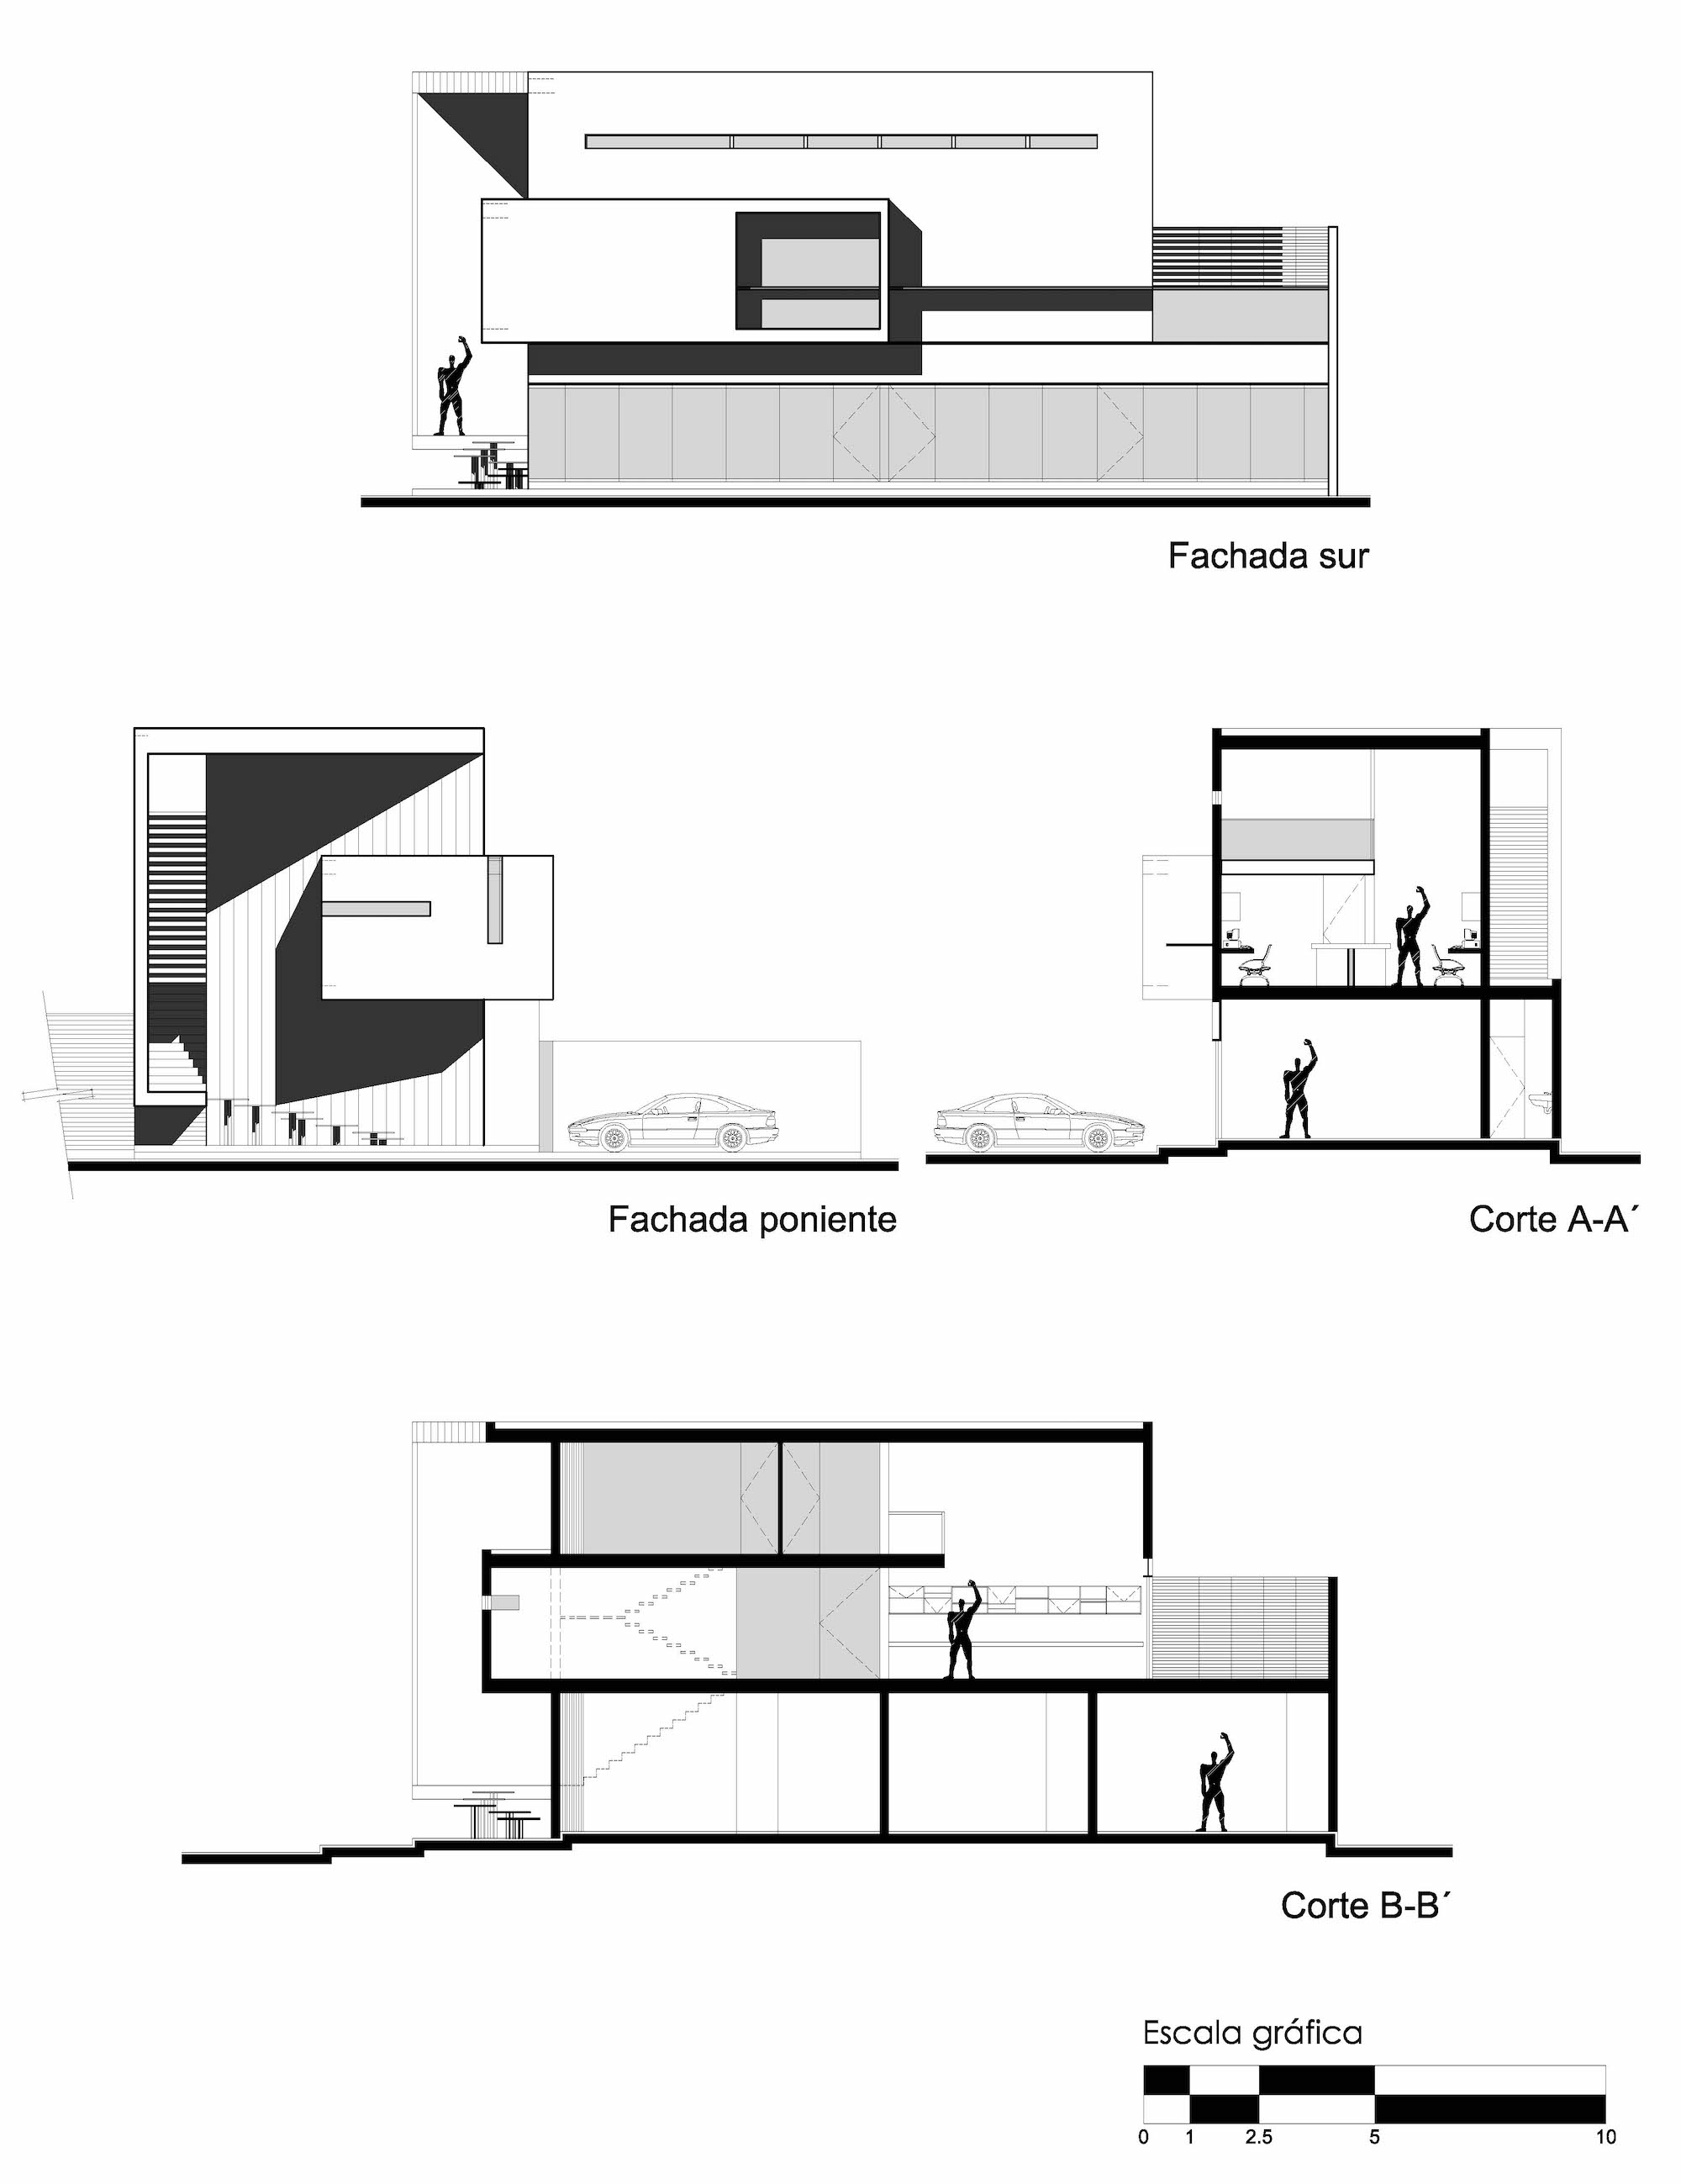 architectural sections and elevations